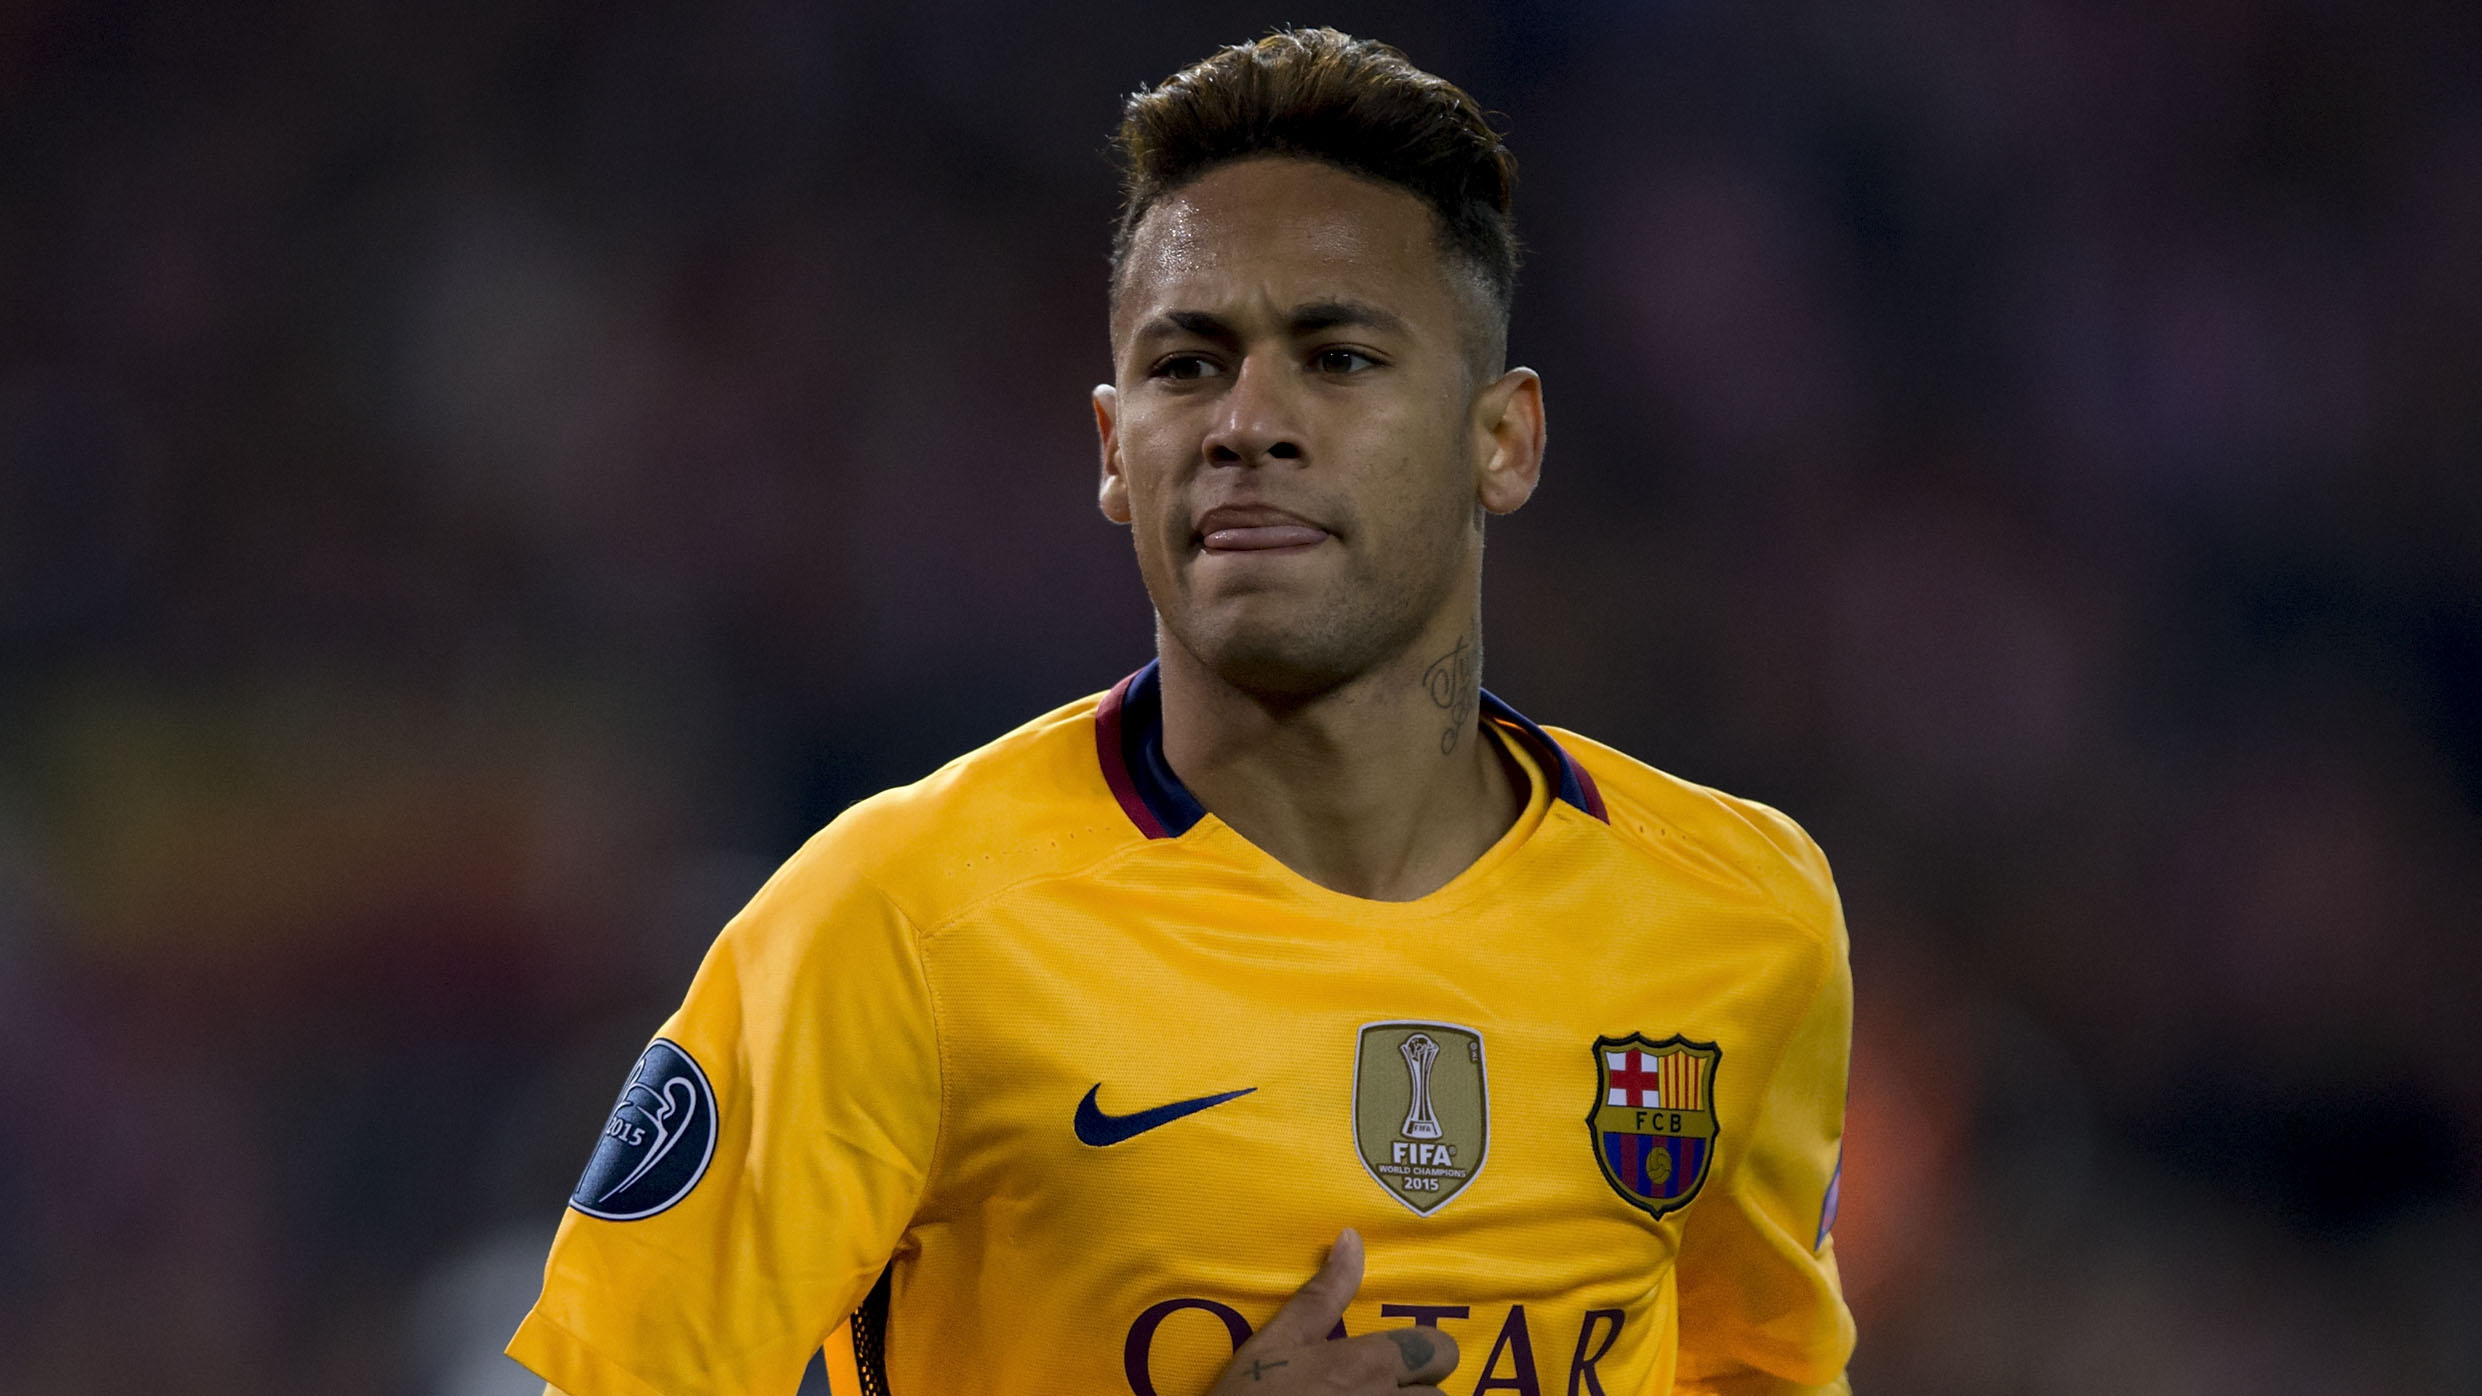 Neymar to snub Manchester United for Barcelona stay